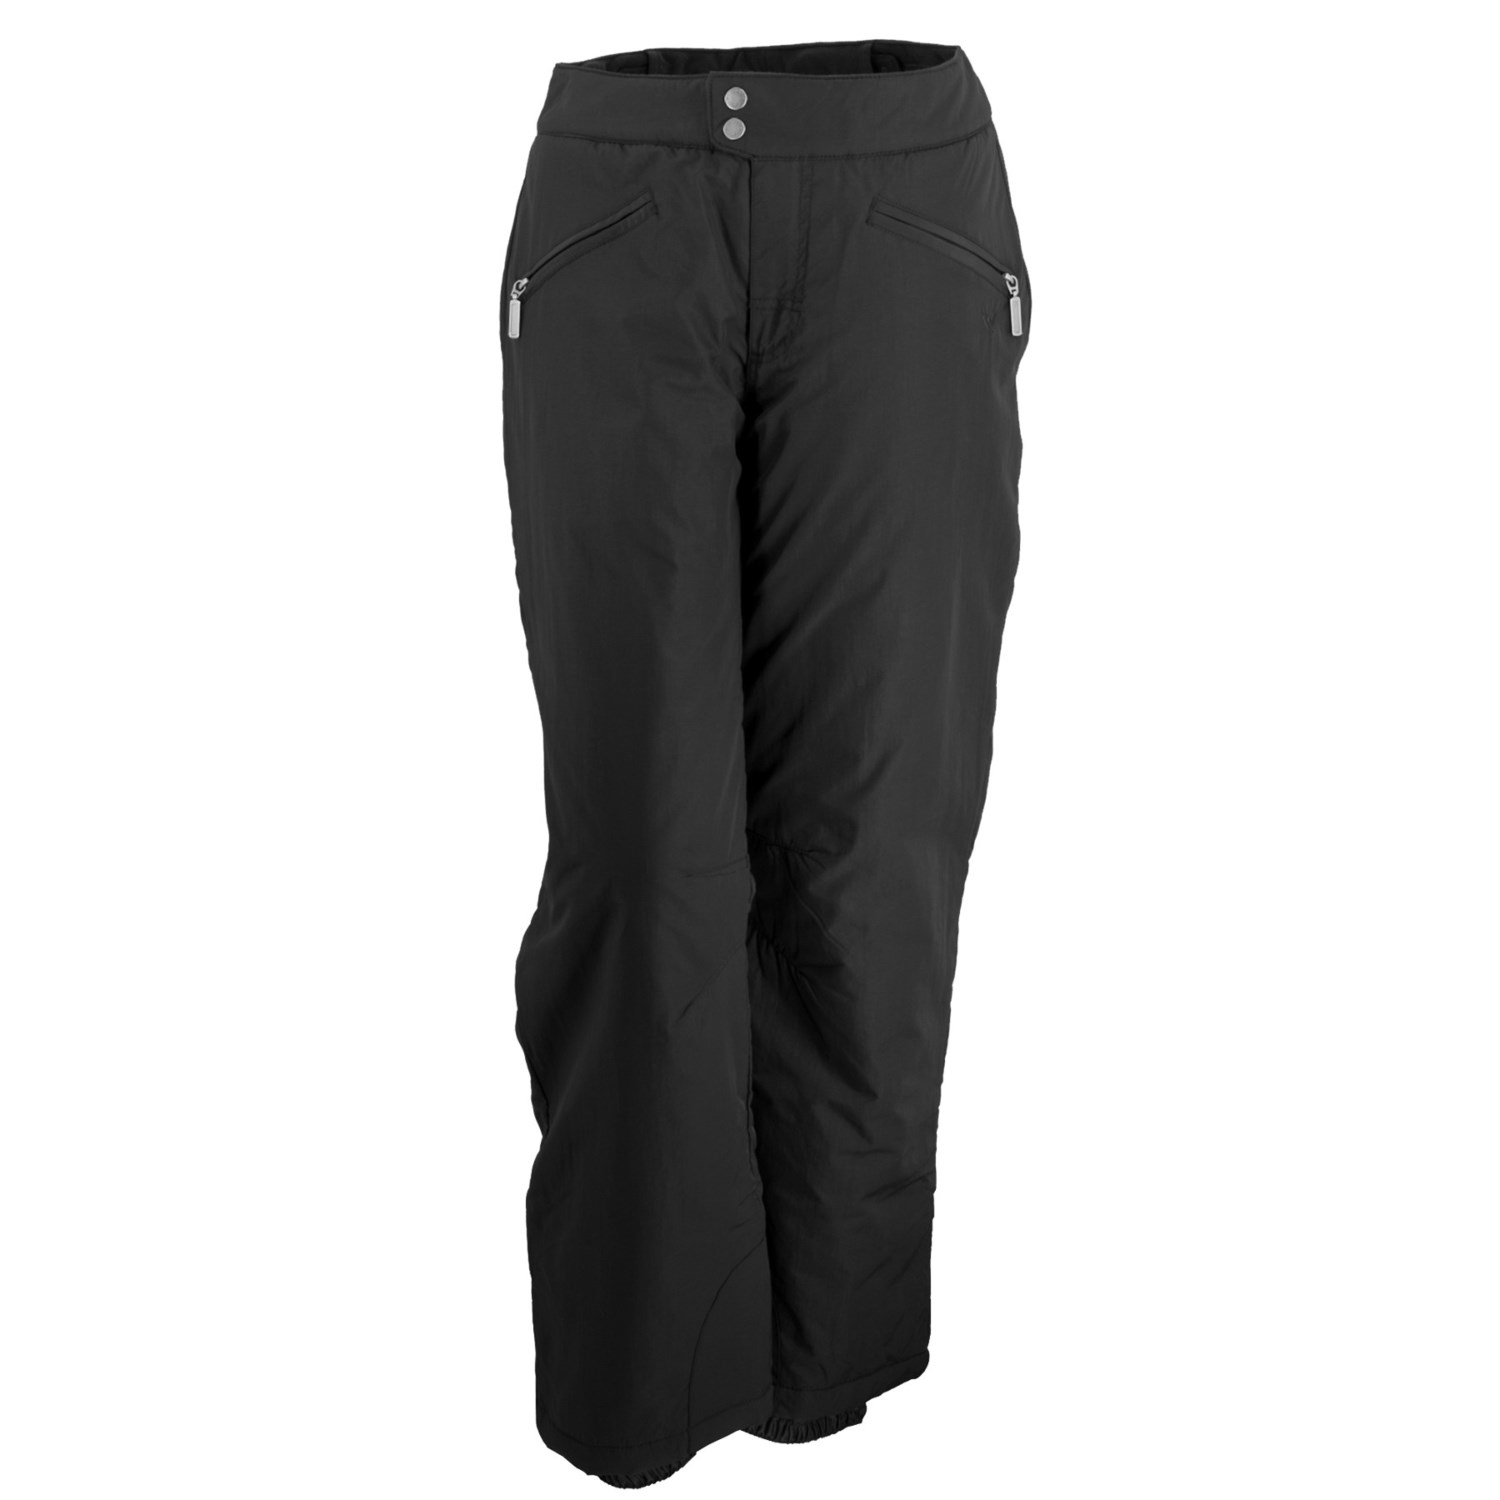 Choose from a huge selection of women's snowboard pants and bibs on smashingprogrammsrj.tk Stay warm, stay dry, and stand out from the crowd.